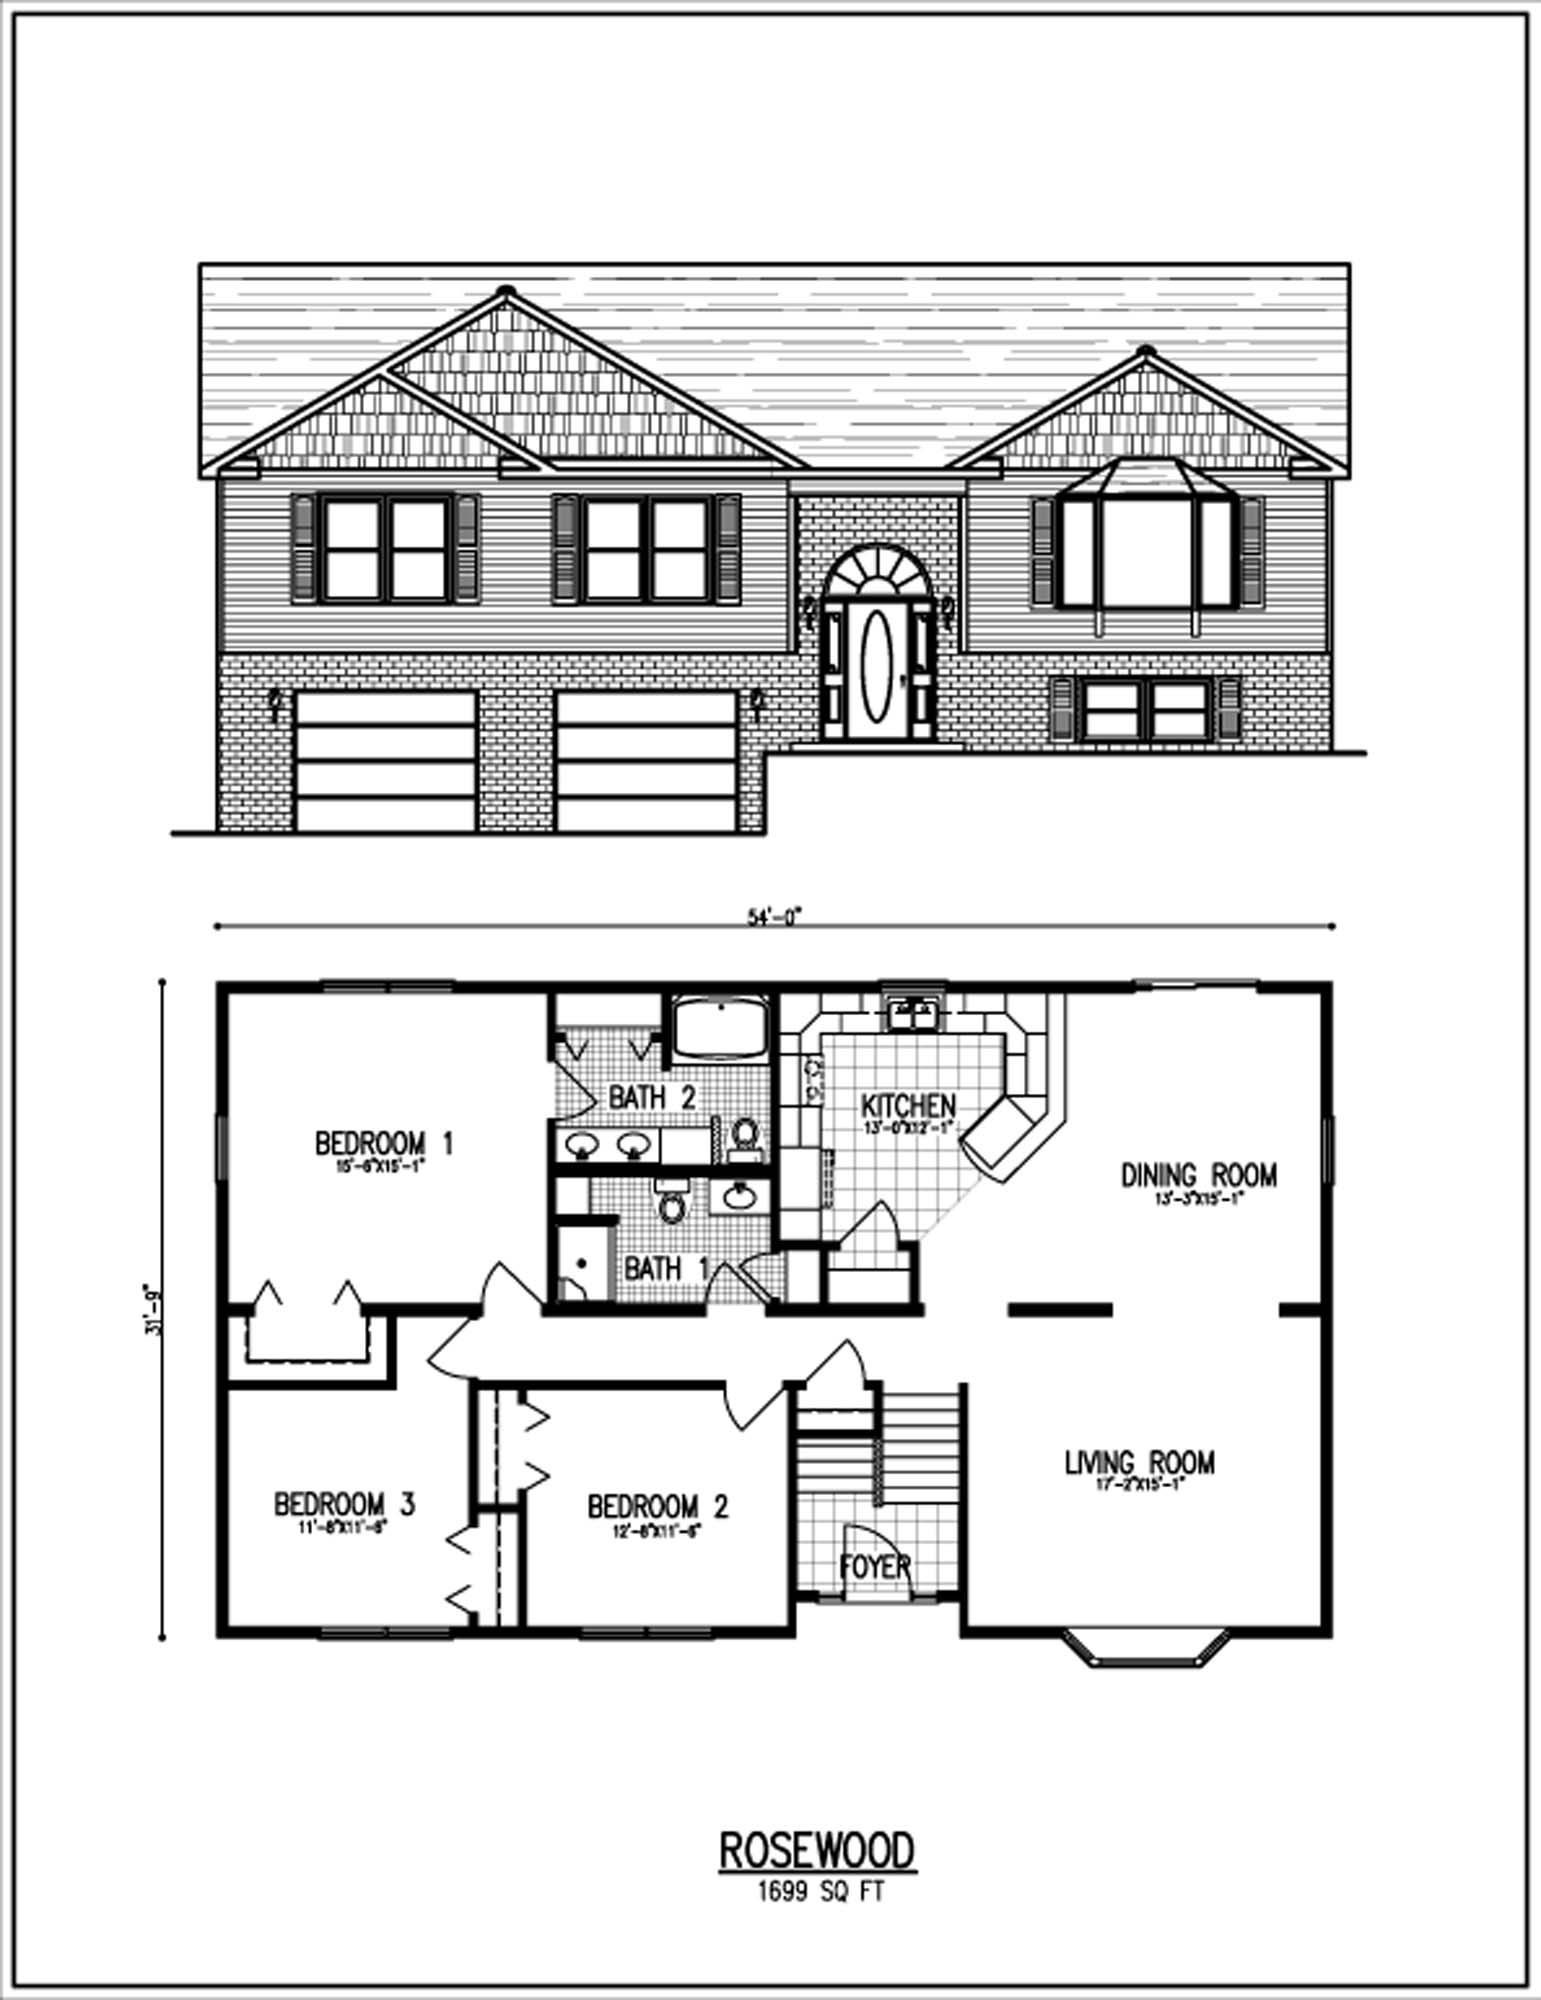 raised ranch house plans raised ranch house plans raised